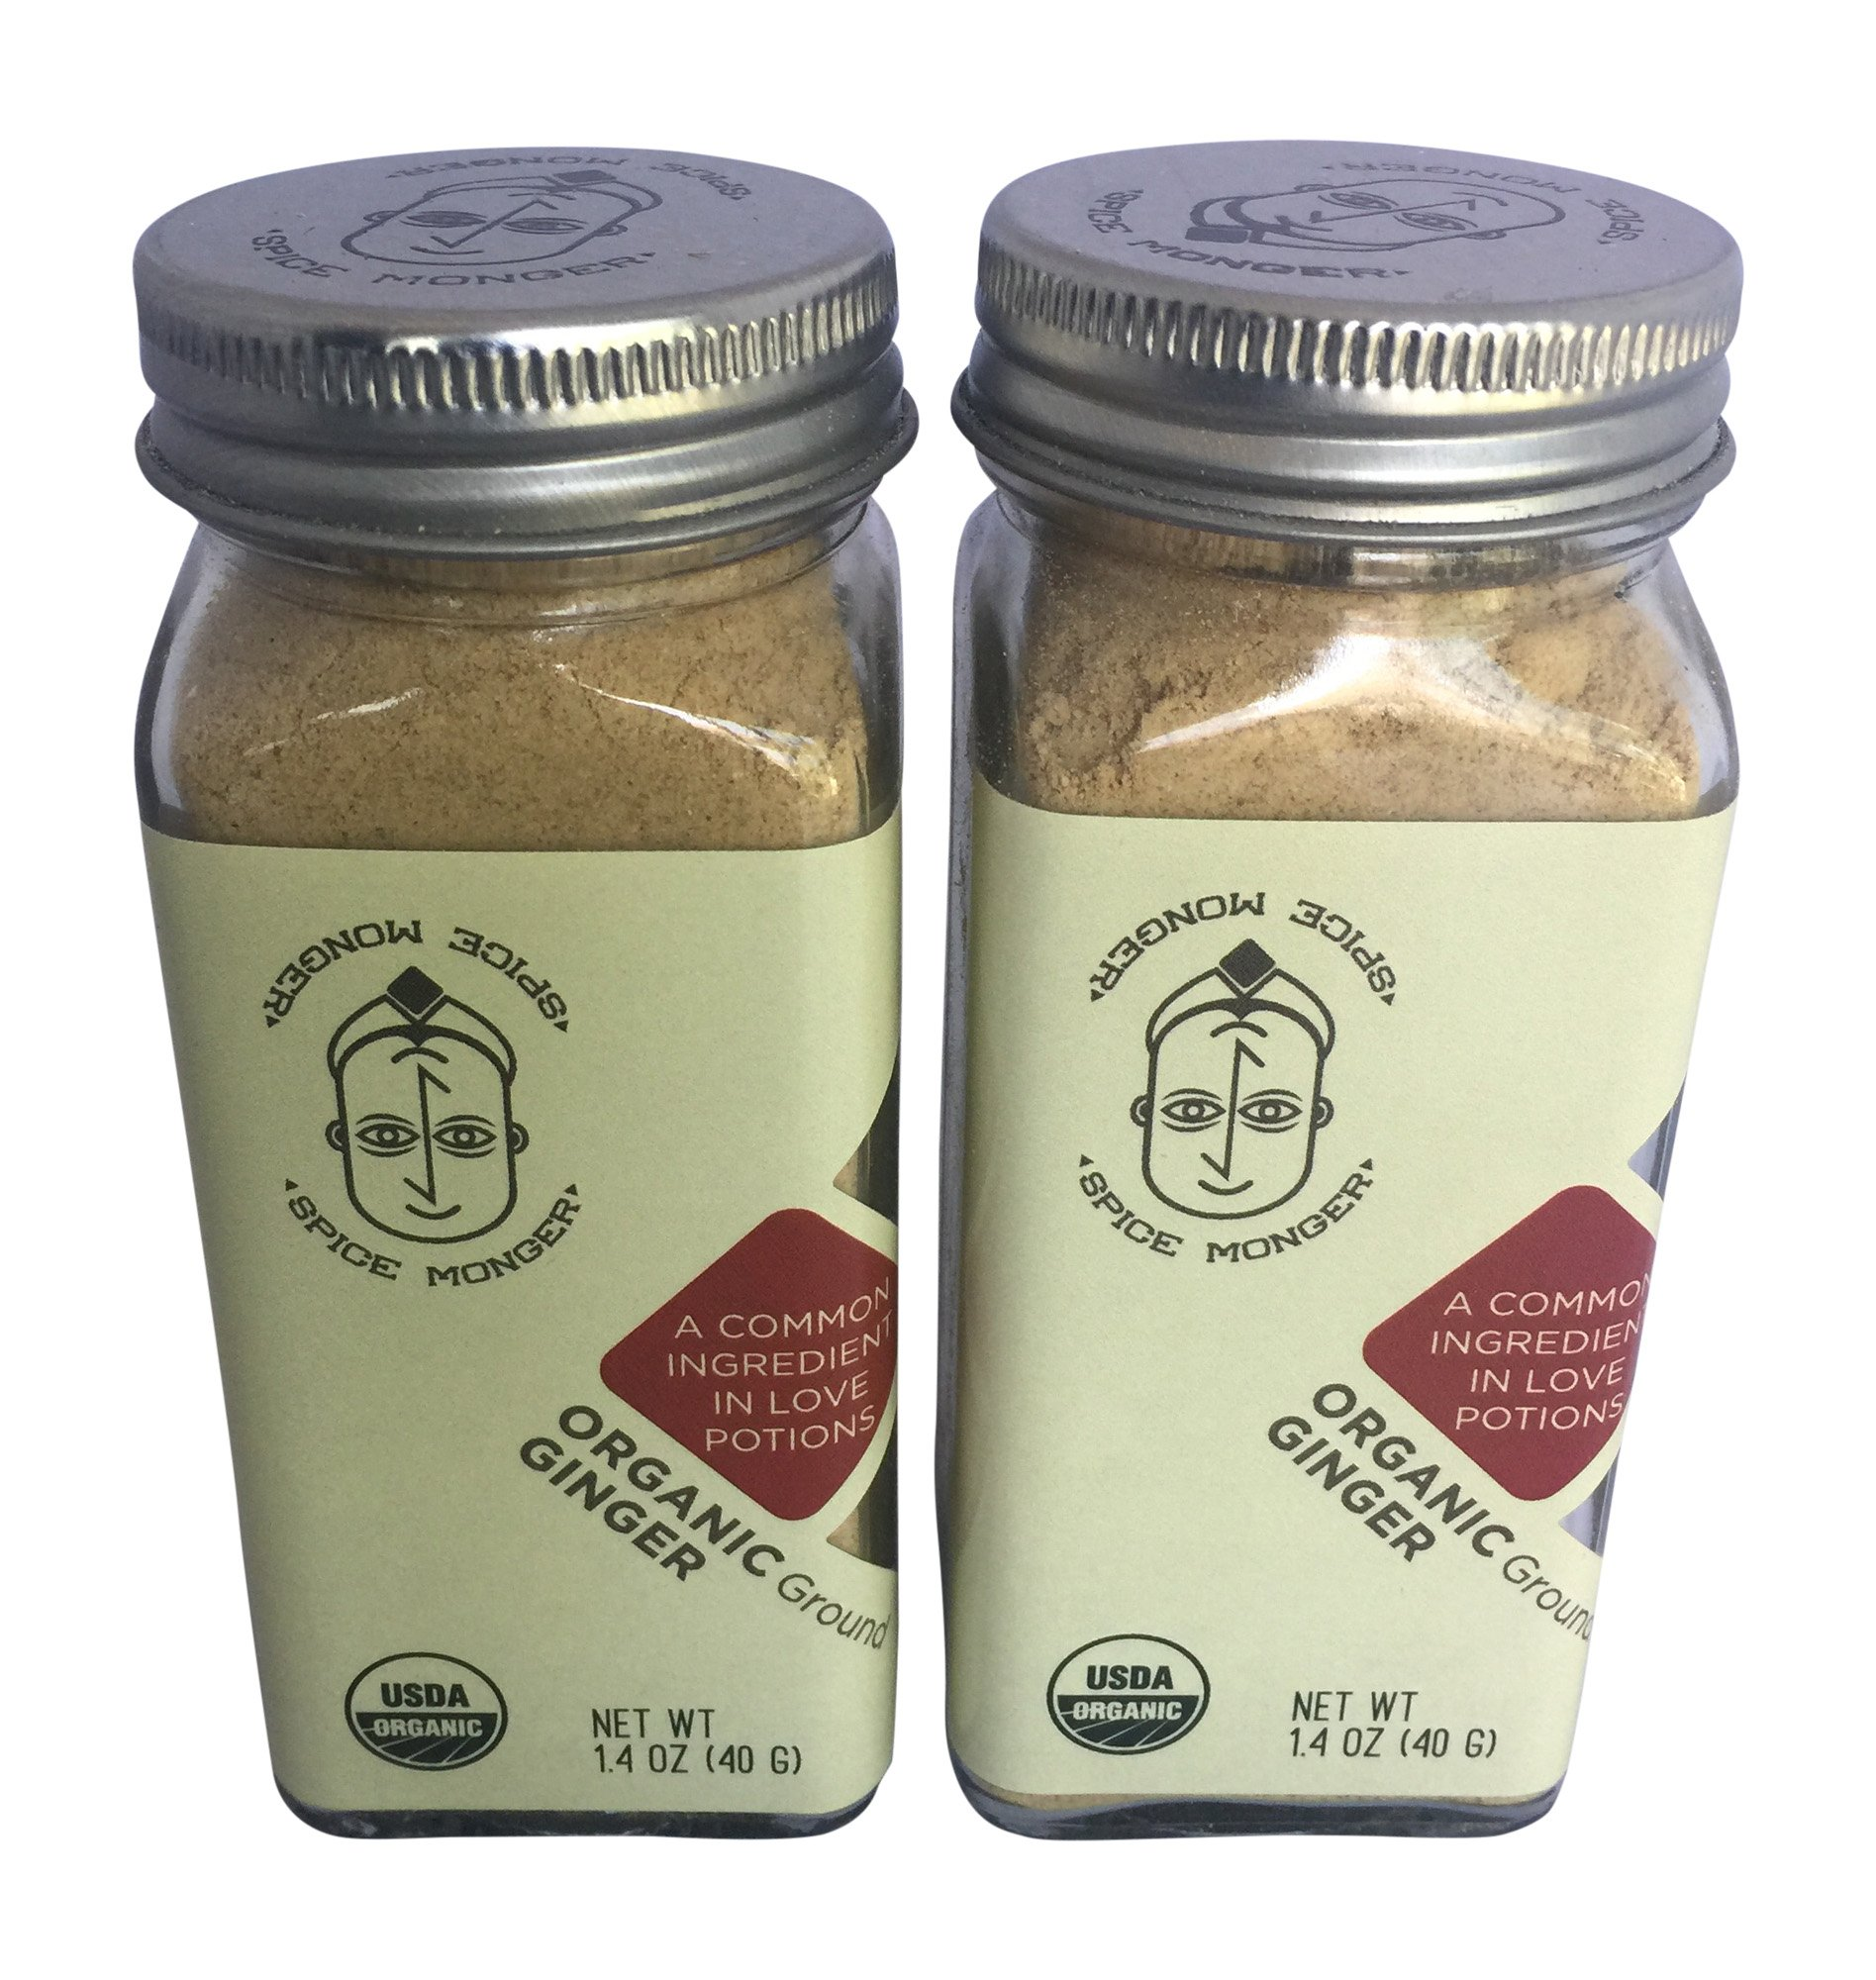 Spice Monger Organic Ginger Powder 1.4 OZ (Pack of 2) USDA Certified All Naturals Guaranteed Freshness from Malabar Coast